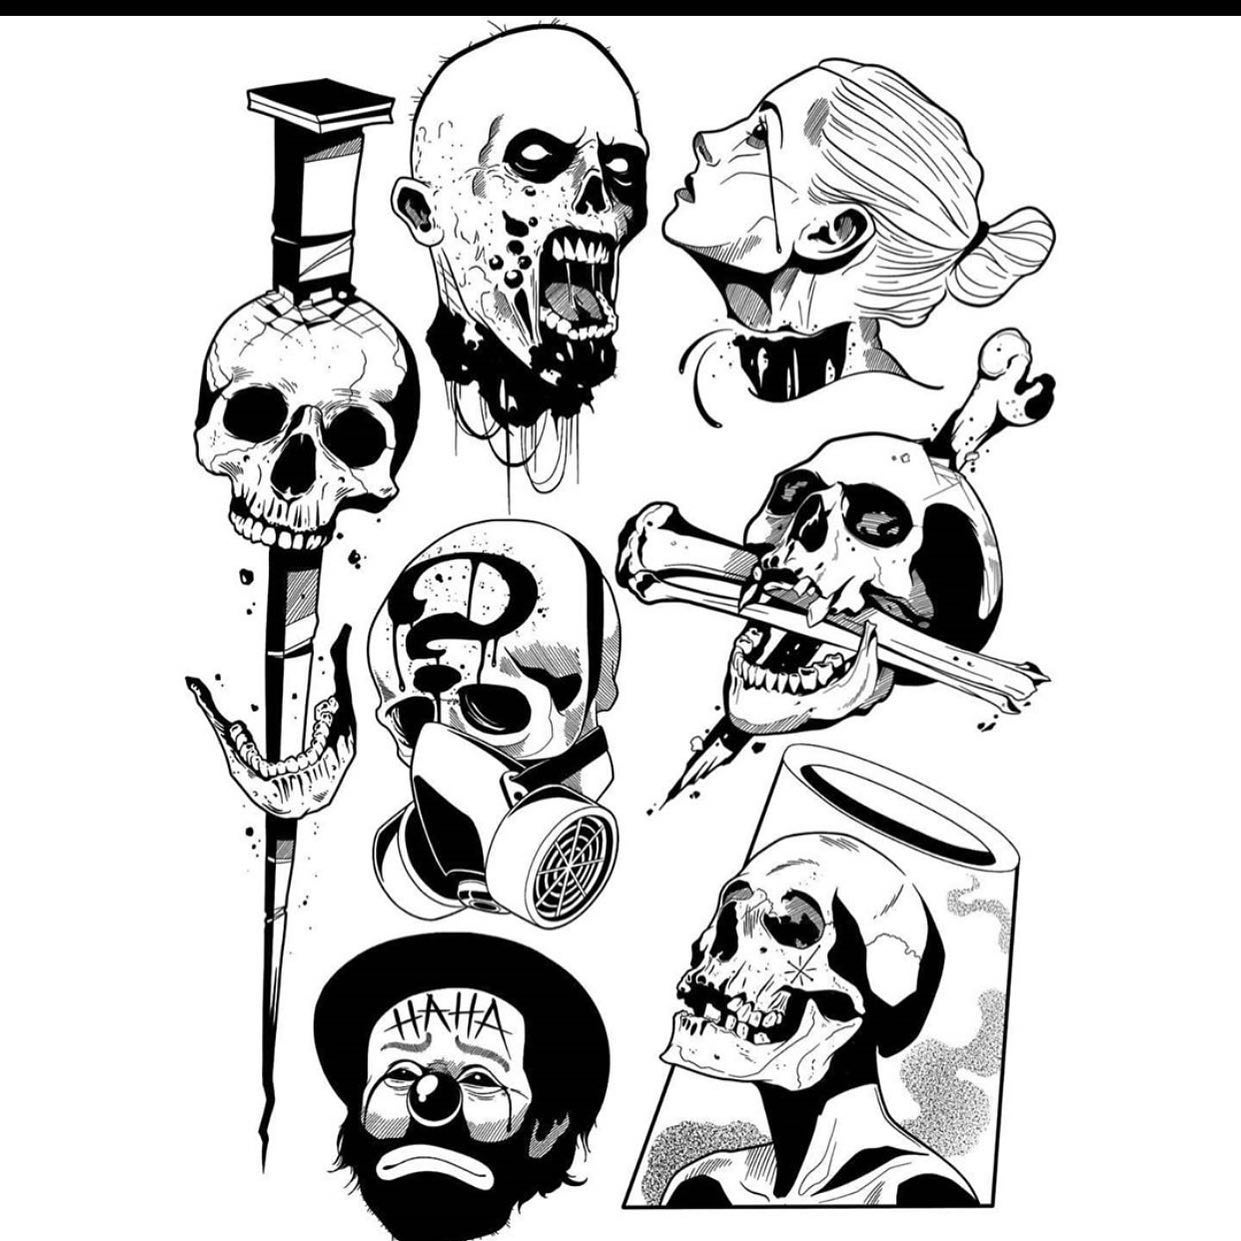 The plan for these and the others (see @jnelson.art s page) was to unleash them at the Scottish Tattoo Convention, alas here we are! As soon as we can start taking appointments again, you'll all be the first to know!!! ———— ———— ️01315582974 artwork@studioxiii.tattoo studioxiii tattoos tattooed tattooflash blackworkers bandg realism realistictattoo skull skinartmag skulltattoo lion liontattoo tattooartist edinburghtattooartist edinburghtattoo girltattoo blackclaw uktta ttt eztattoocartridges ukbta skindeep txtooing tattoomediaink thebesttattooartist tattoosnob tattooartistic